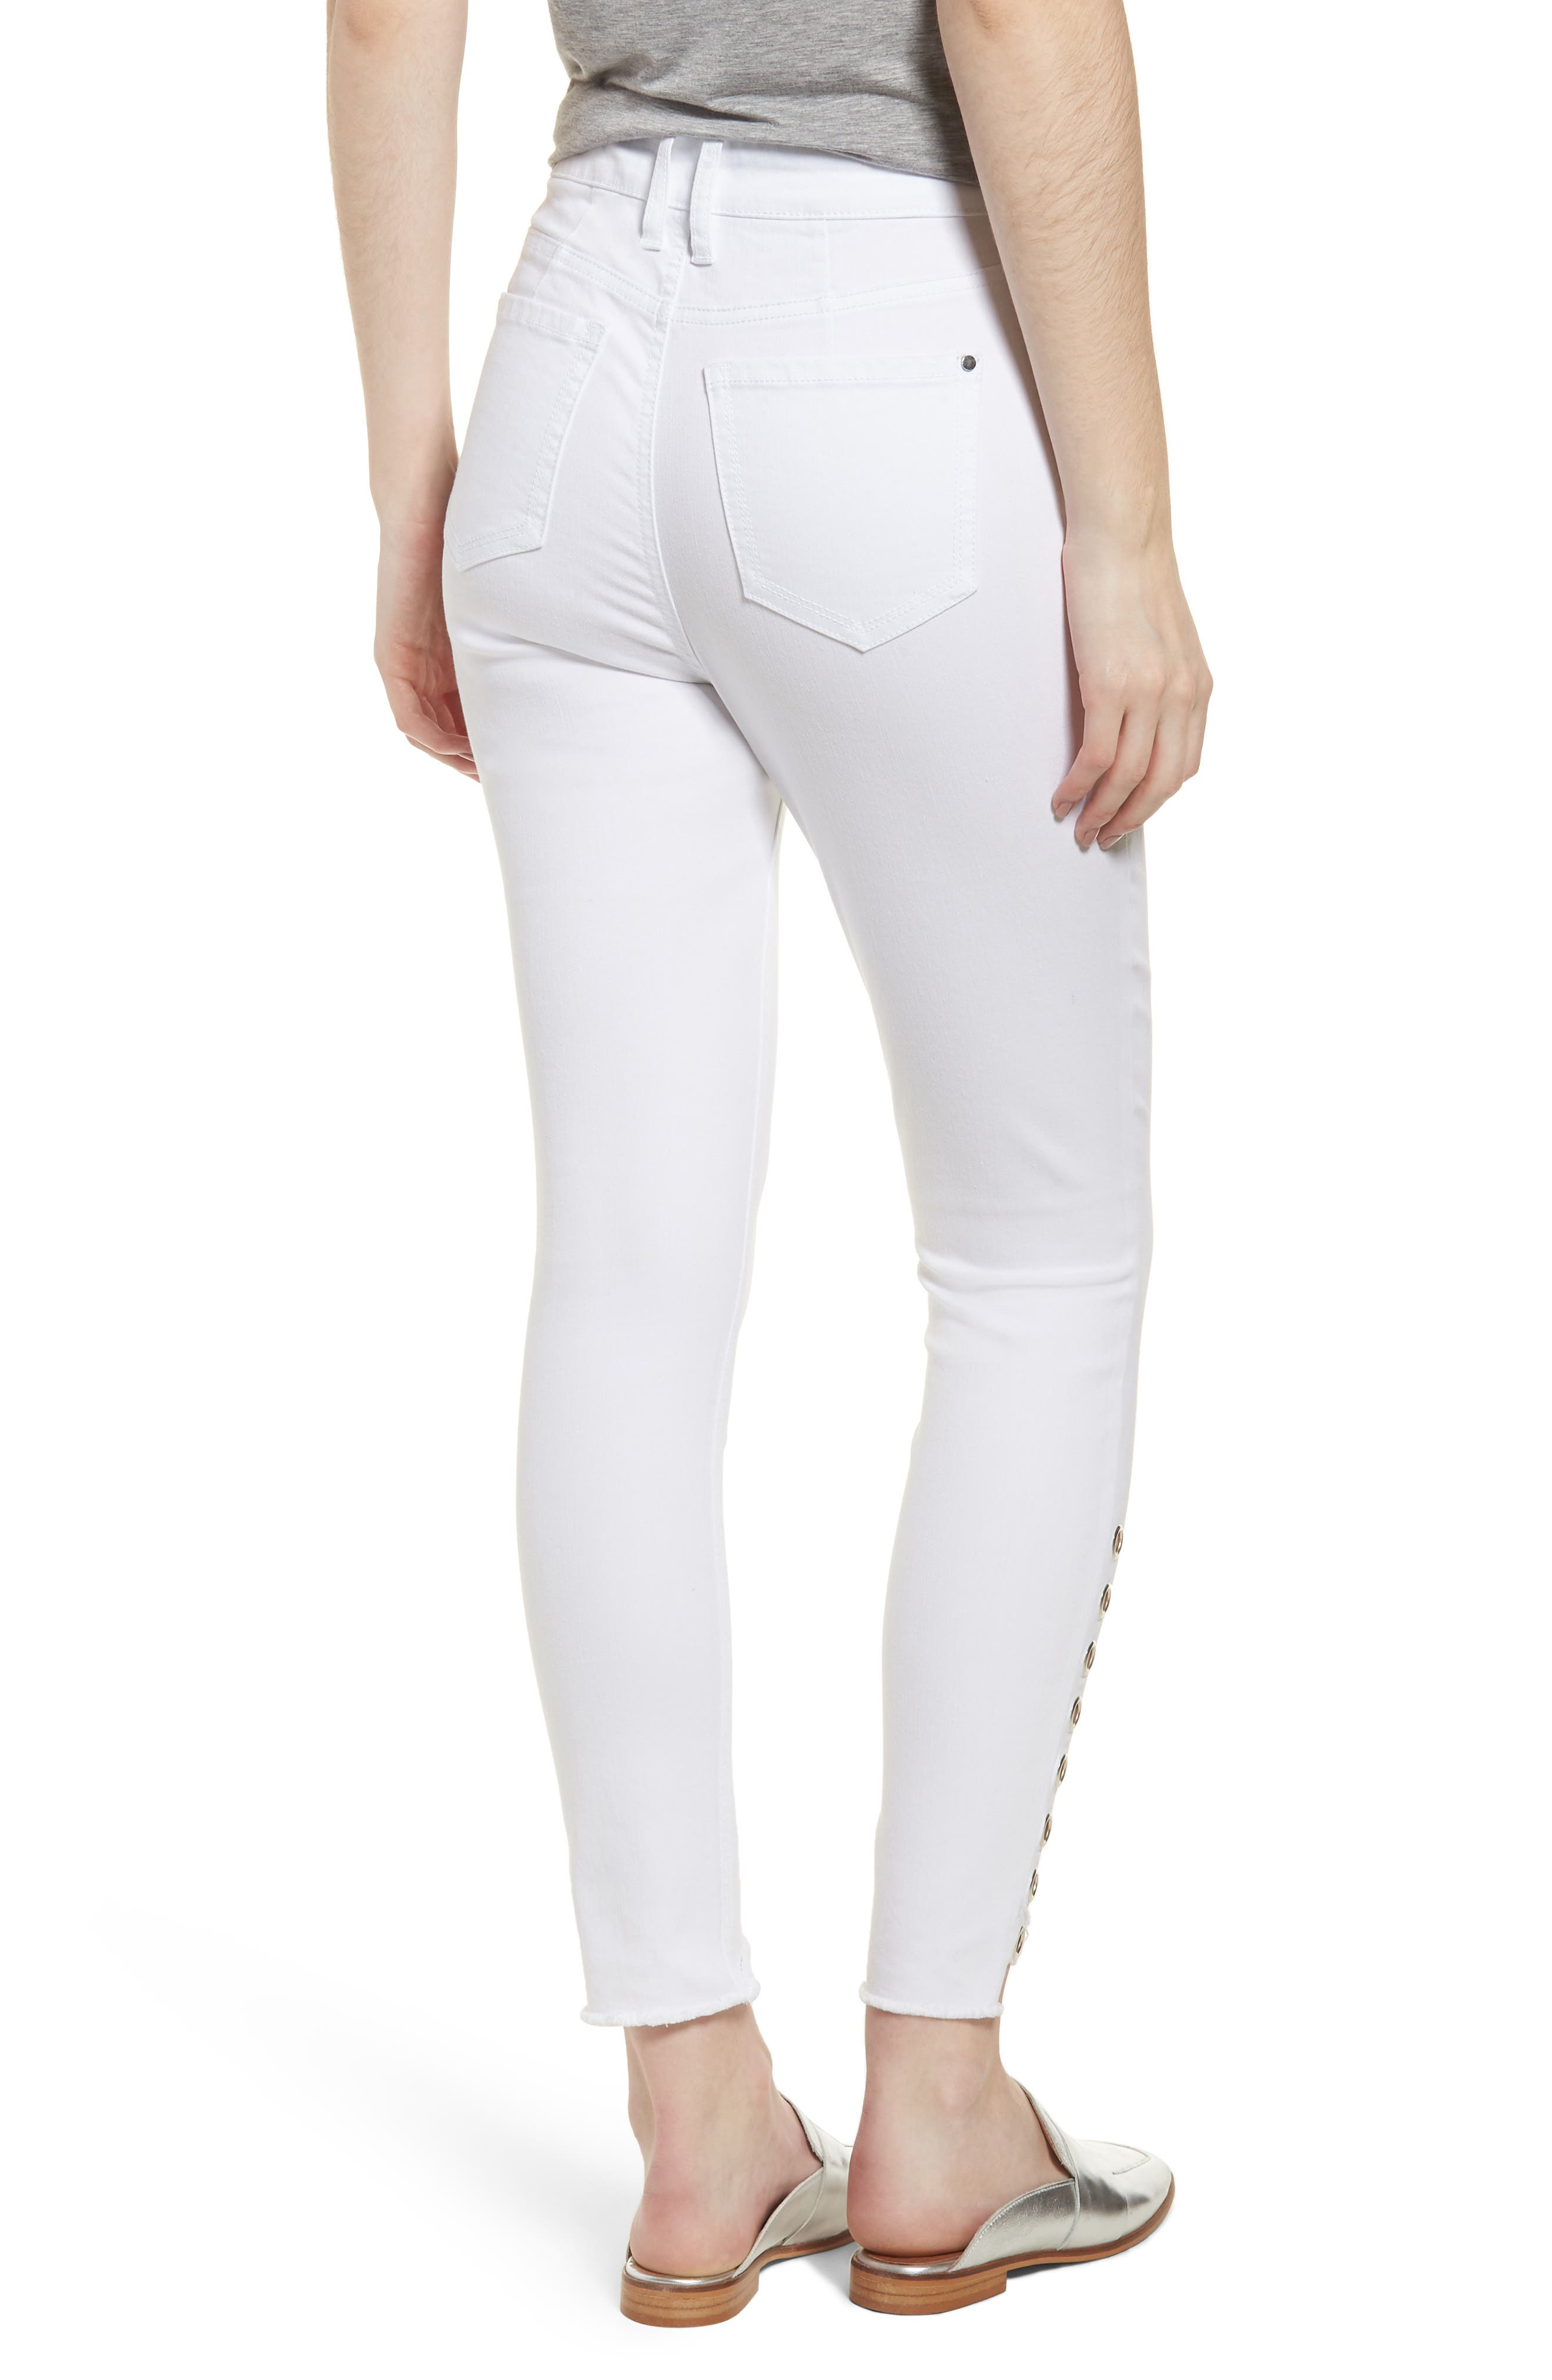 Grommet Detail Ankle Skinny Jeans,                             Alternate thumbnail 2, color,                             Optic White